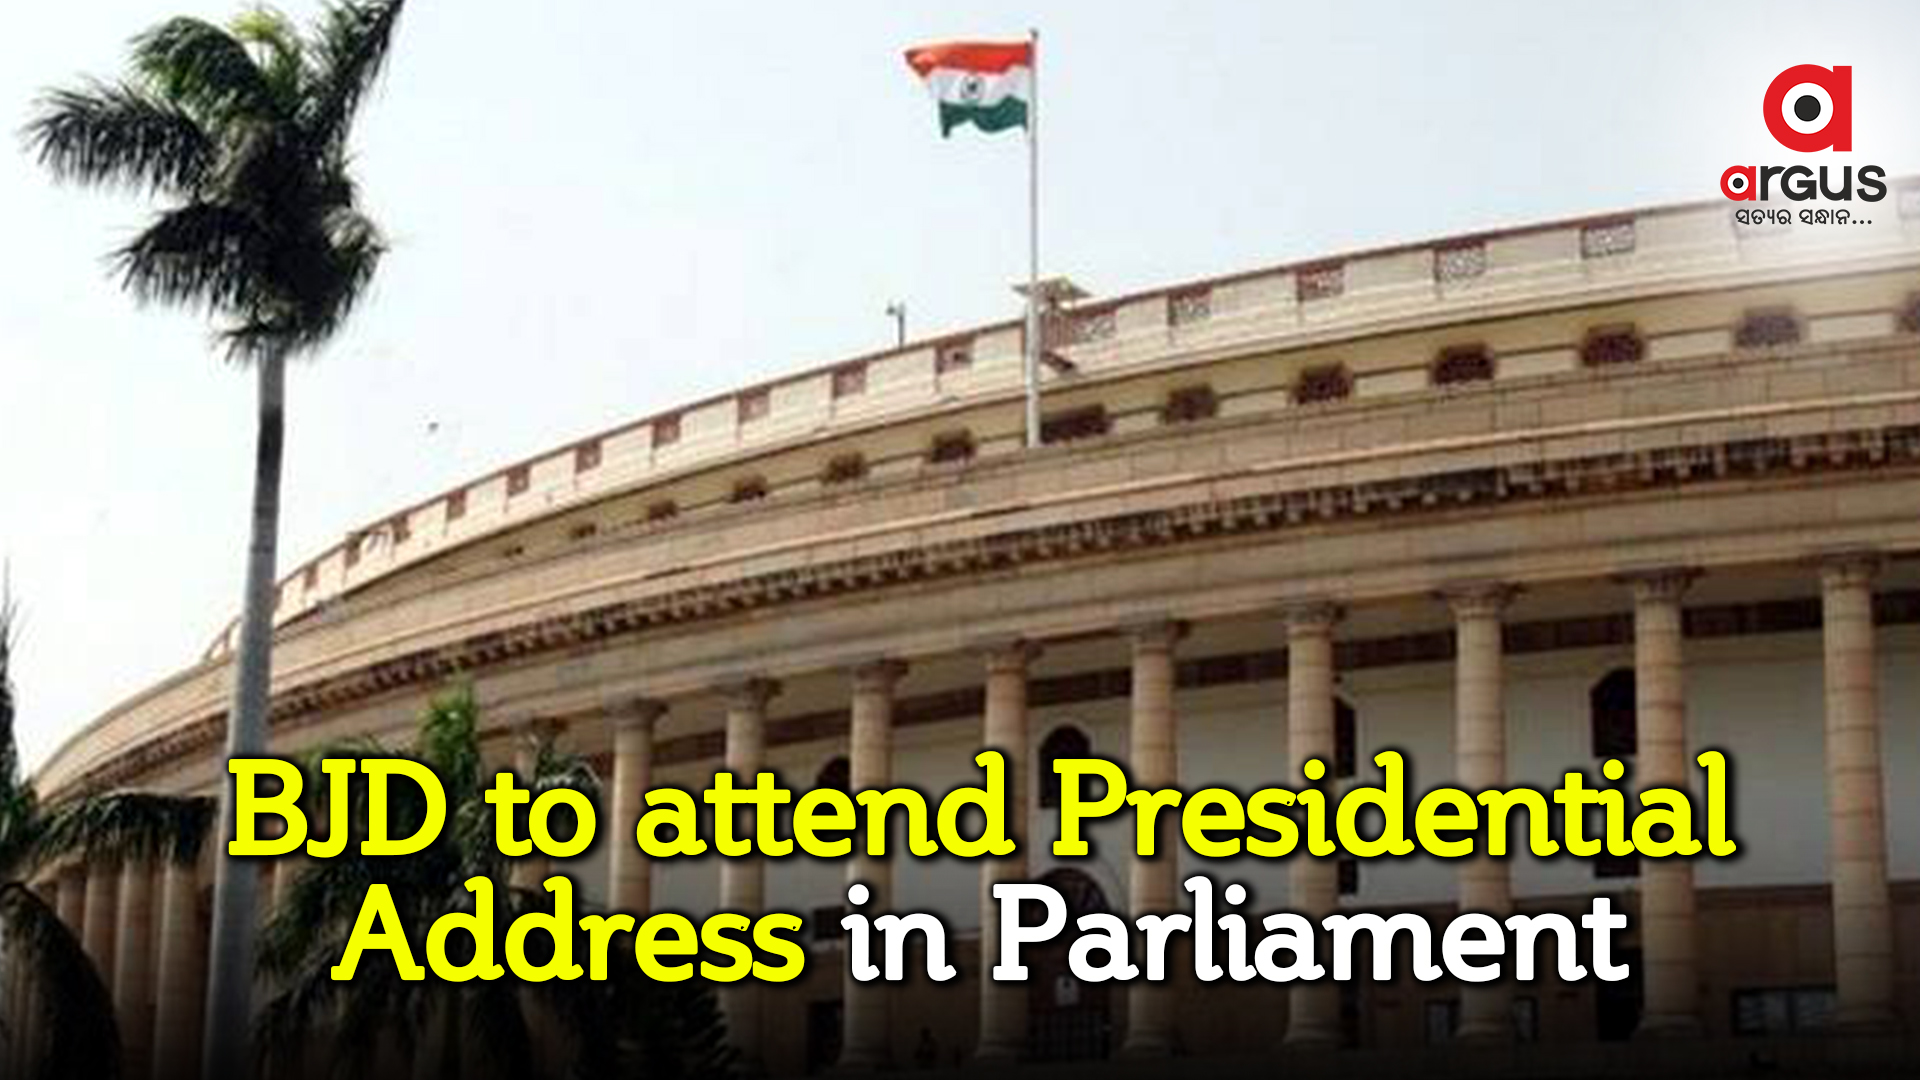 BJD to attend President's Address in Parliament